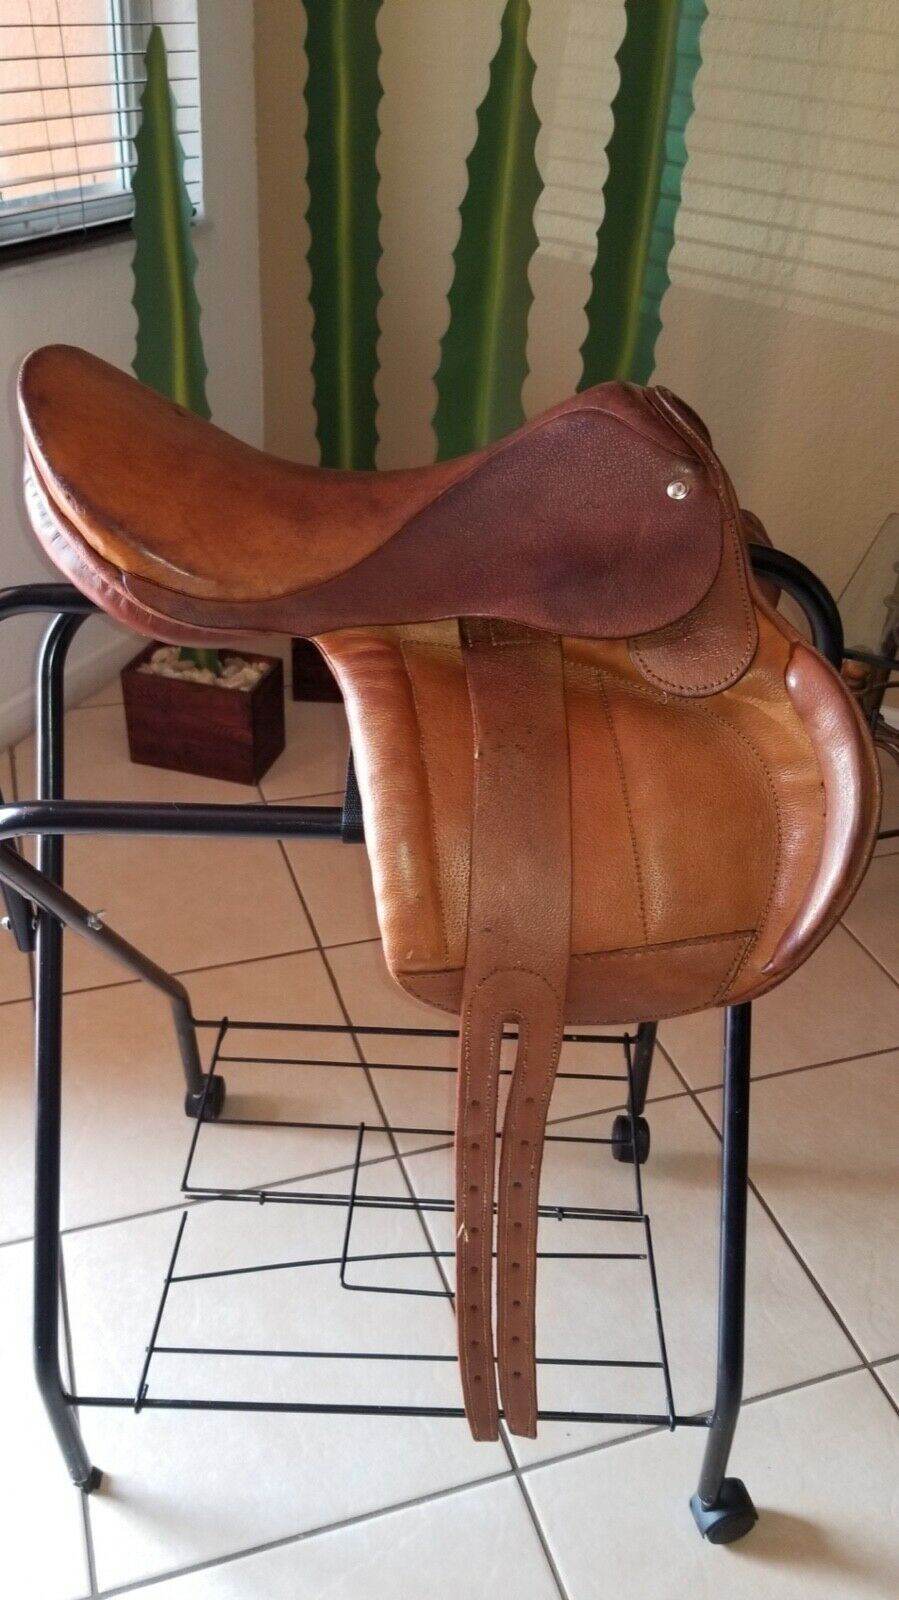 17  Leather Mesace Saddle  Brown - Used  for your style of play at the cheapest prices